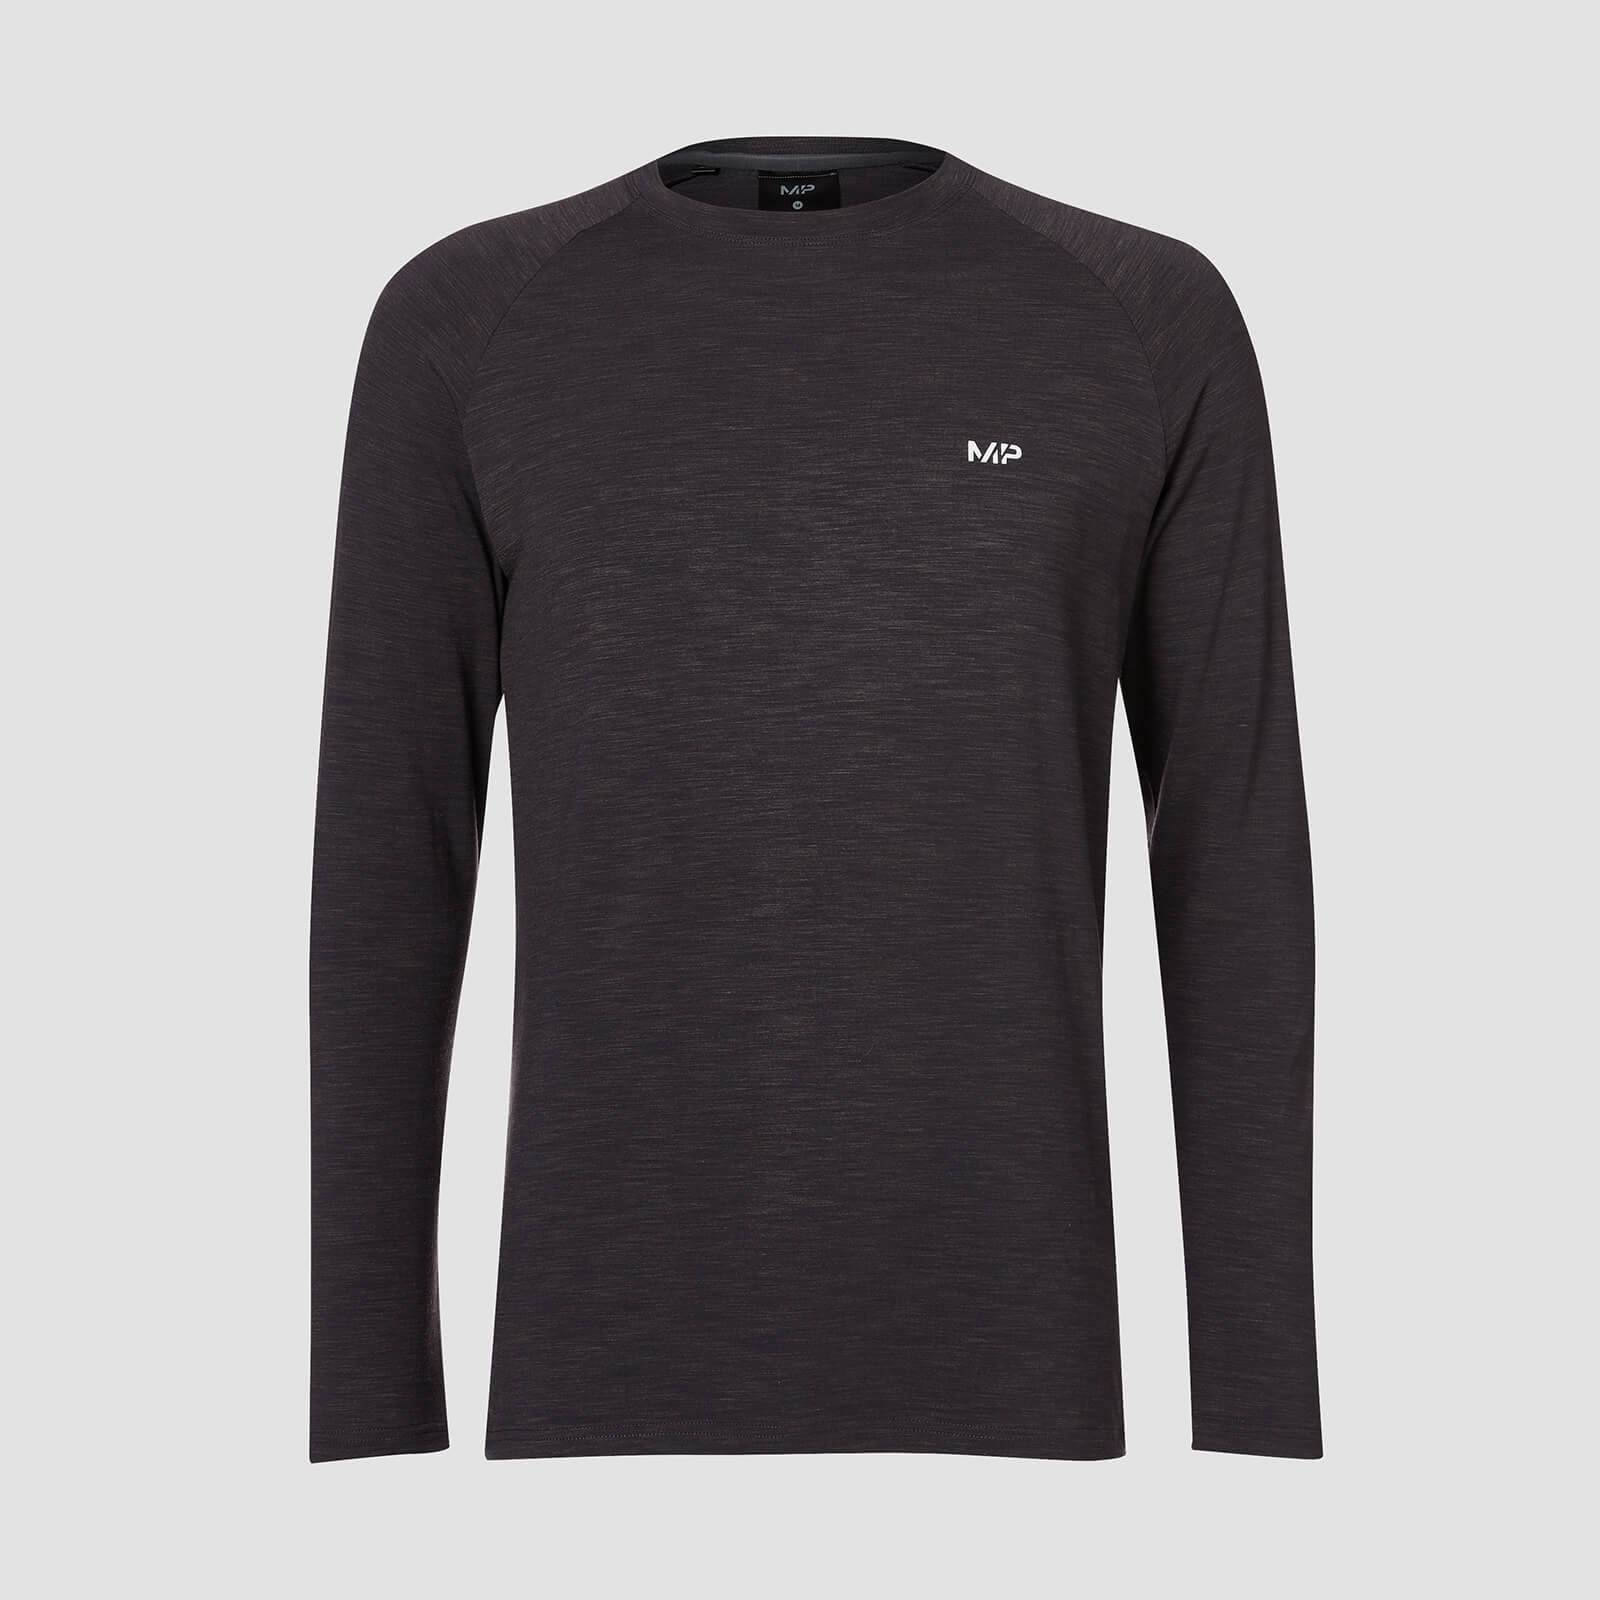 Myprotein T-shirt Performance Long-Sleeve MP - Nero mélange - S